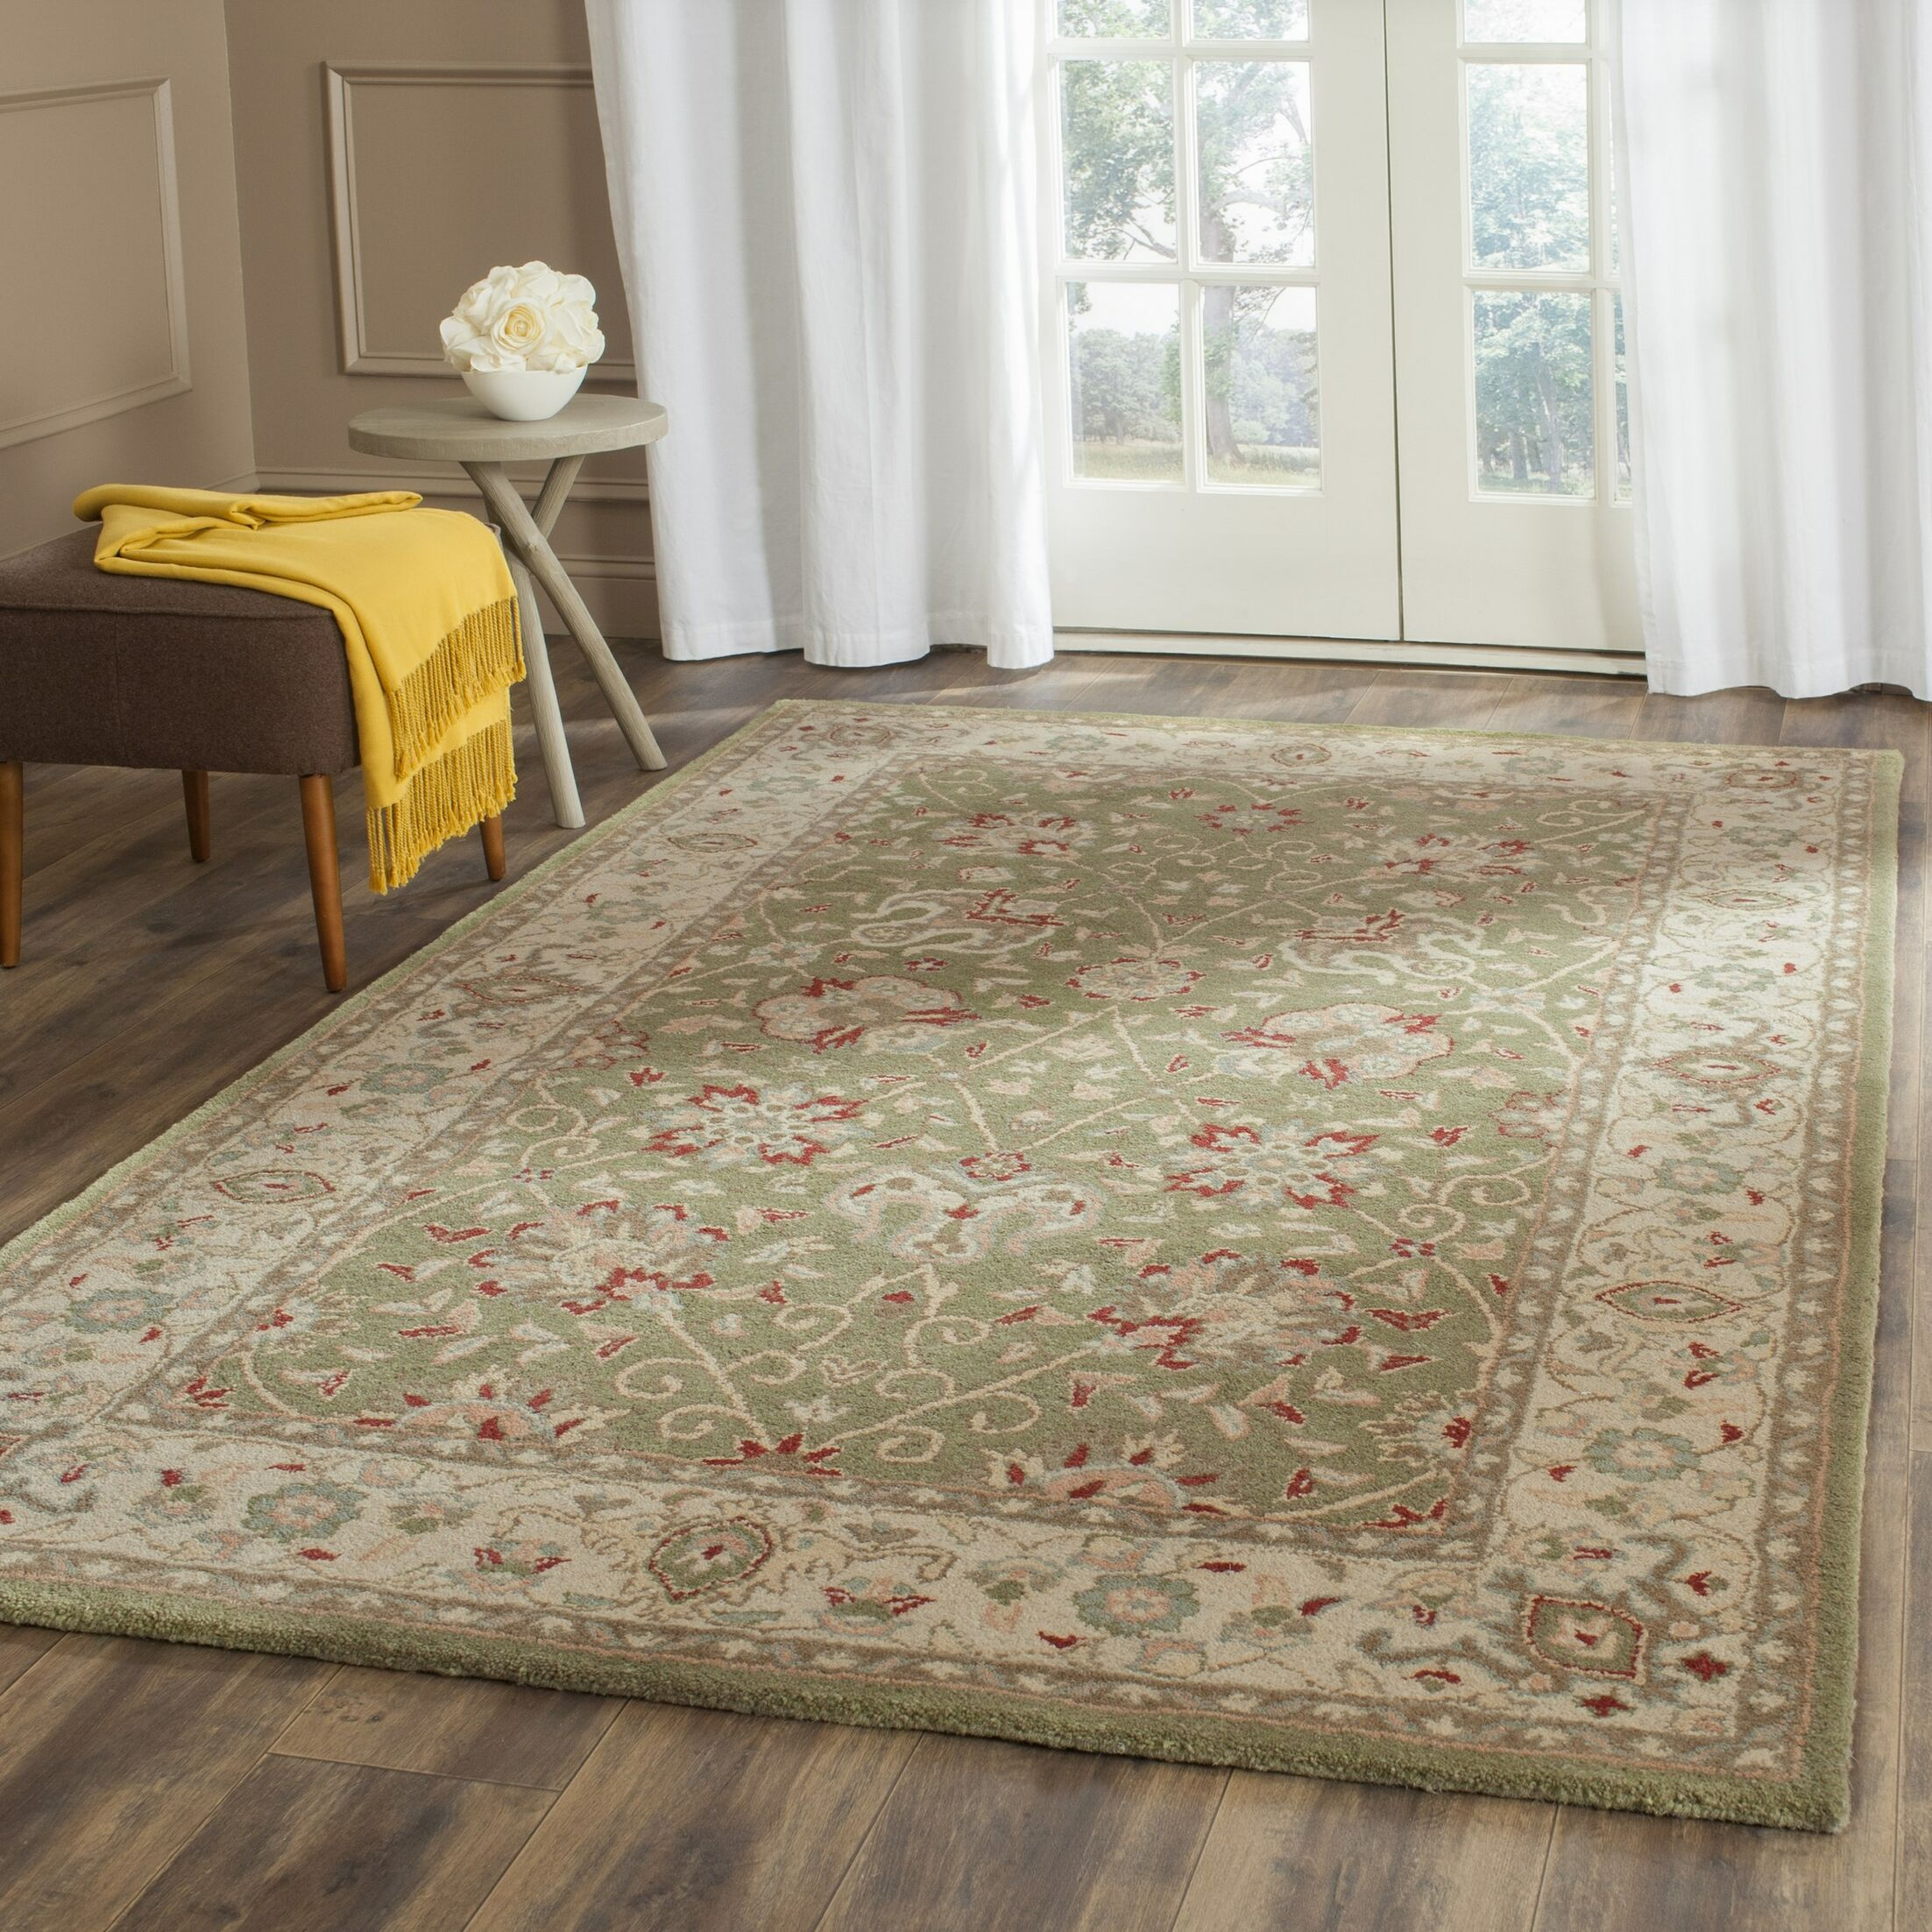 Dunbar Hand-Woven Wool Sage Area Rug Rug Size: Rectangle 2'3